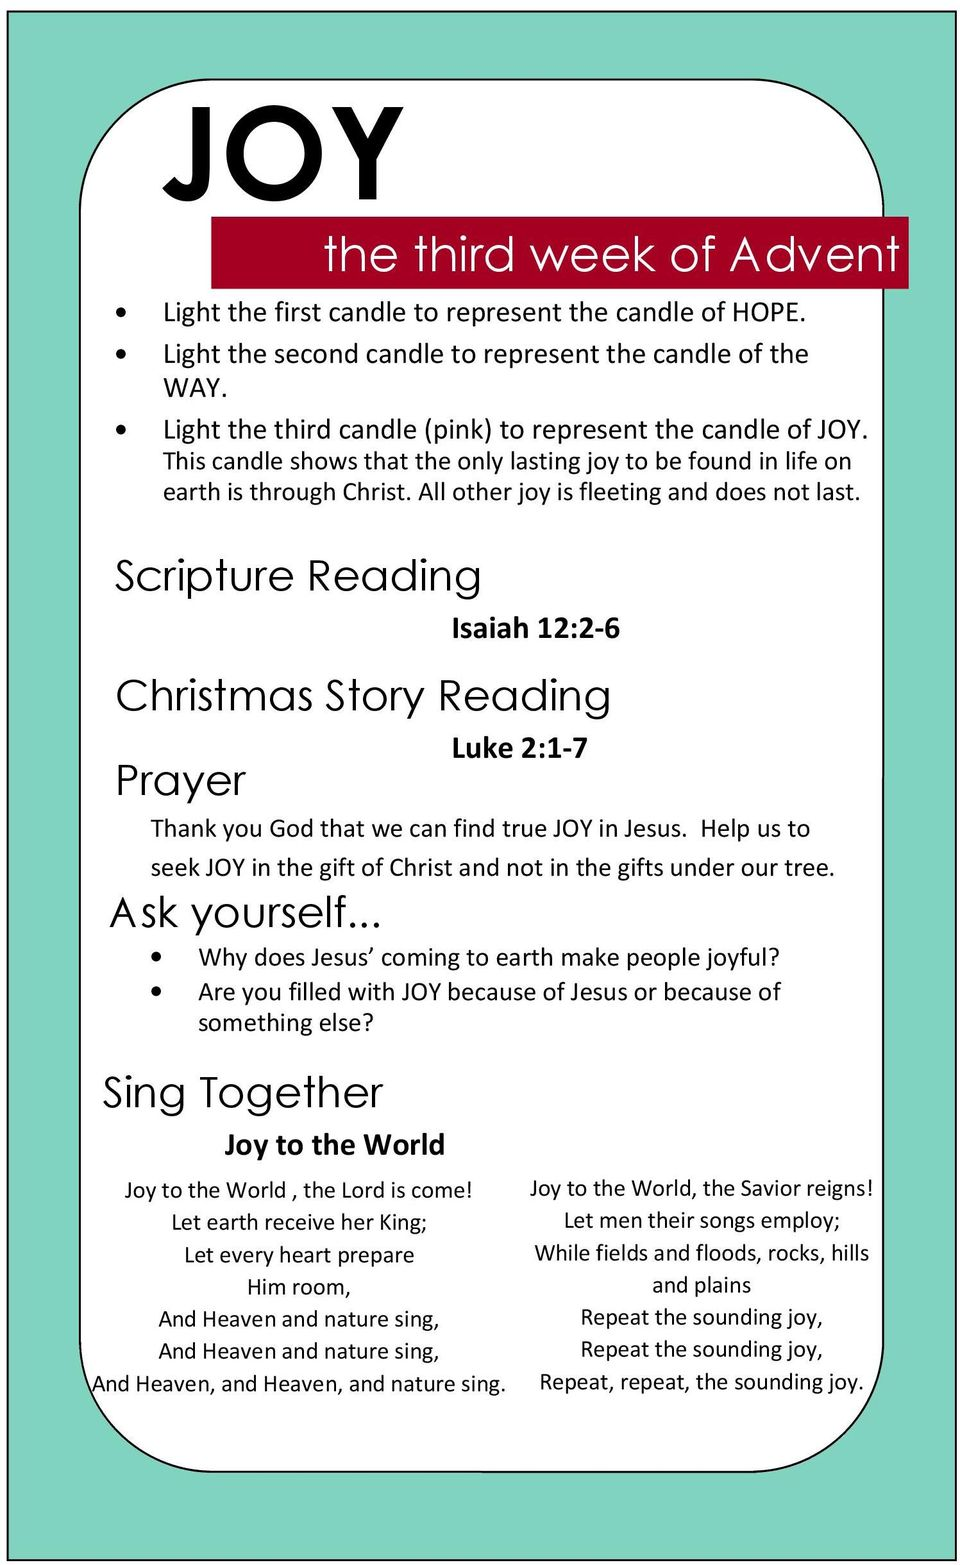 Scripture Reading Isaiah 12:2-6 Christmas Story Reading Luke 2:1-7 Thank you God that we can find true JOY in Jesus. Help us to seek JOY in the gift of Christ and not in the gifts under our tree.